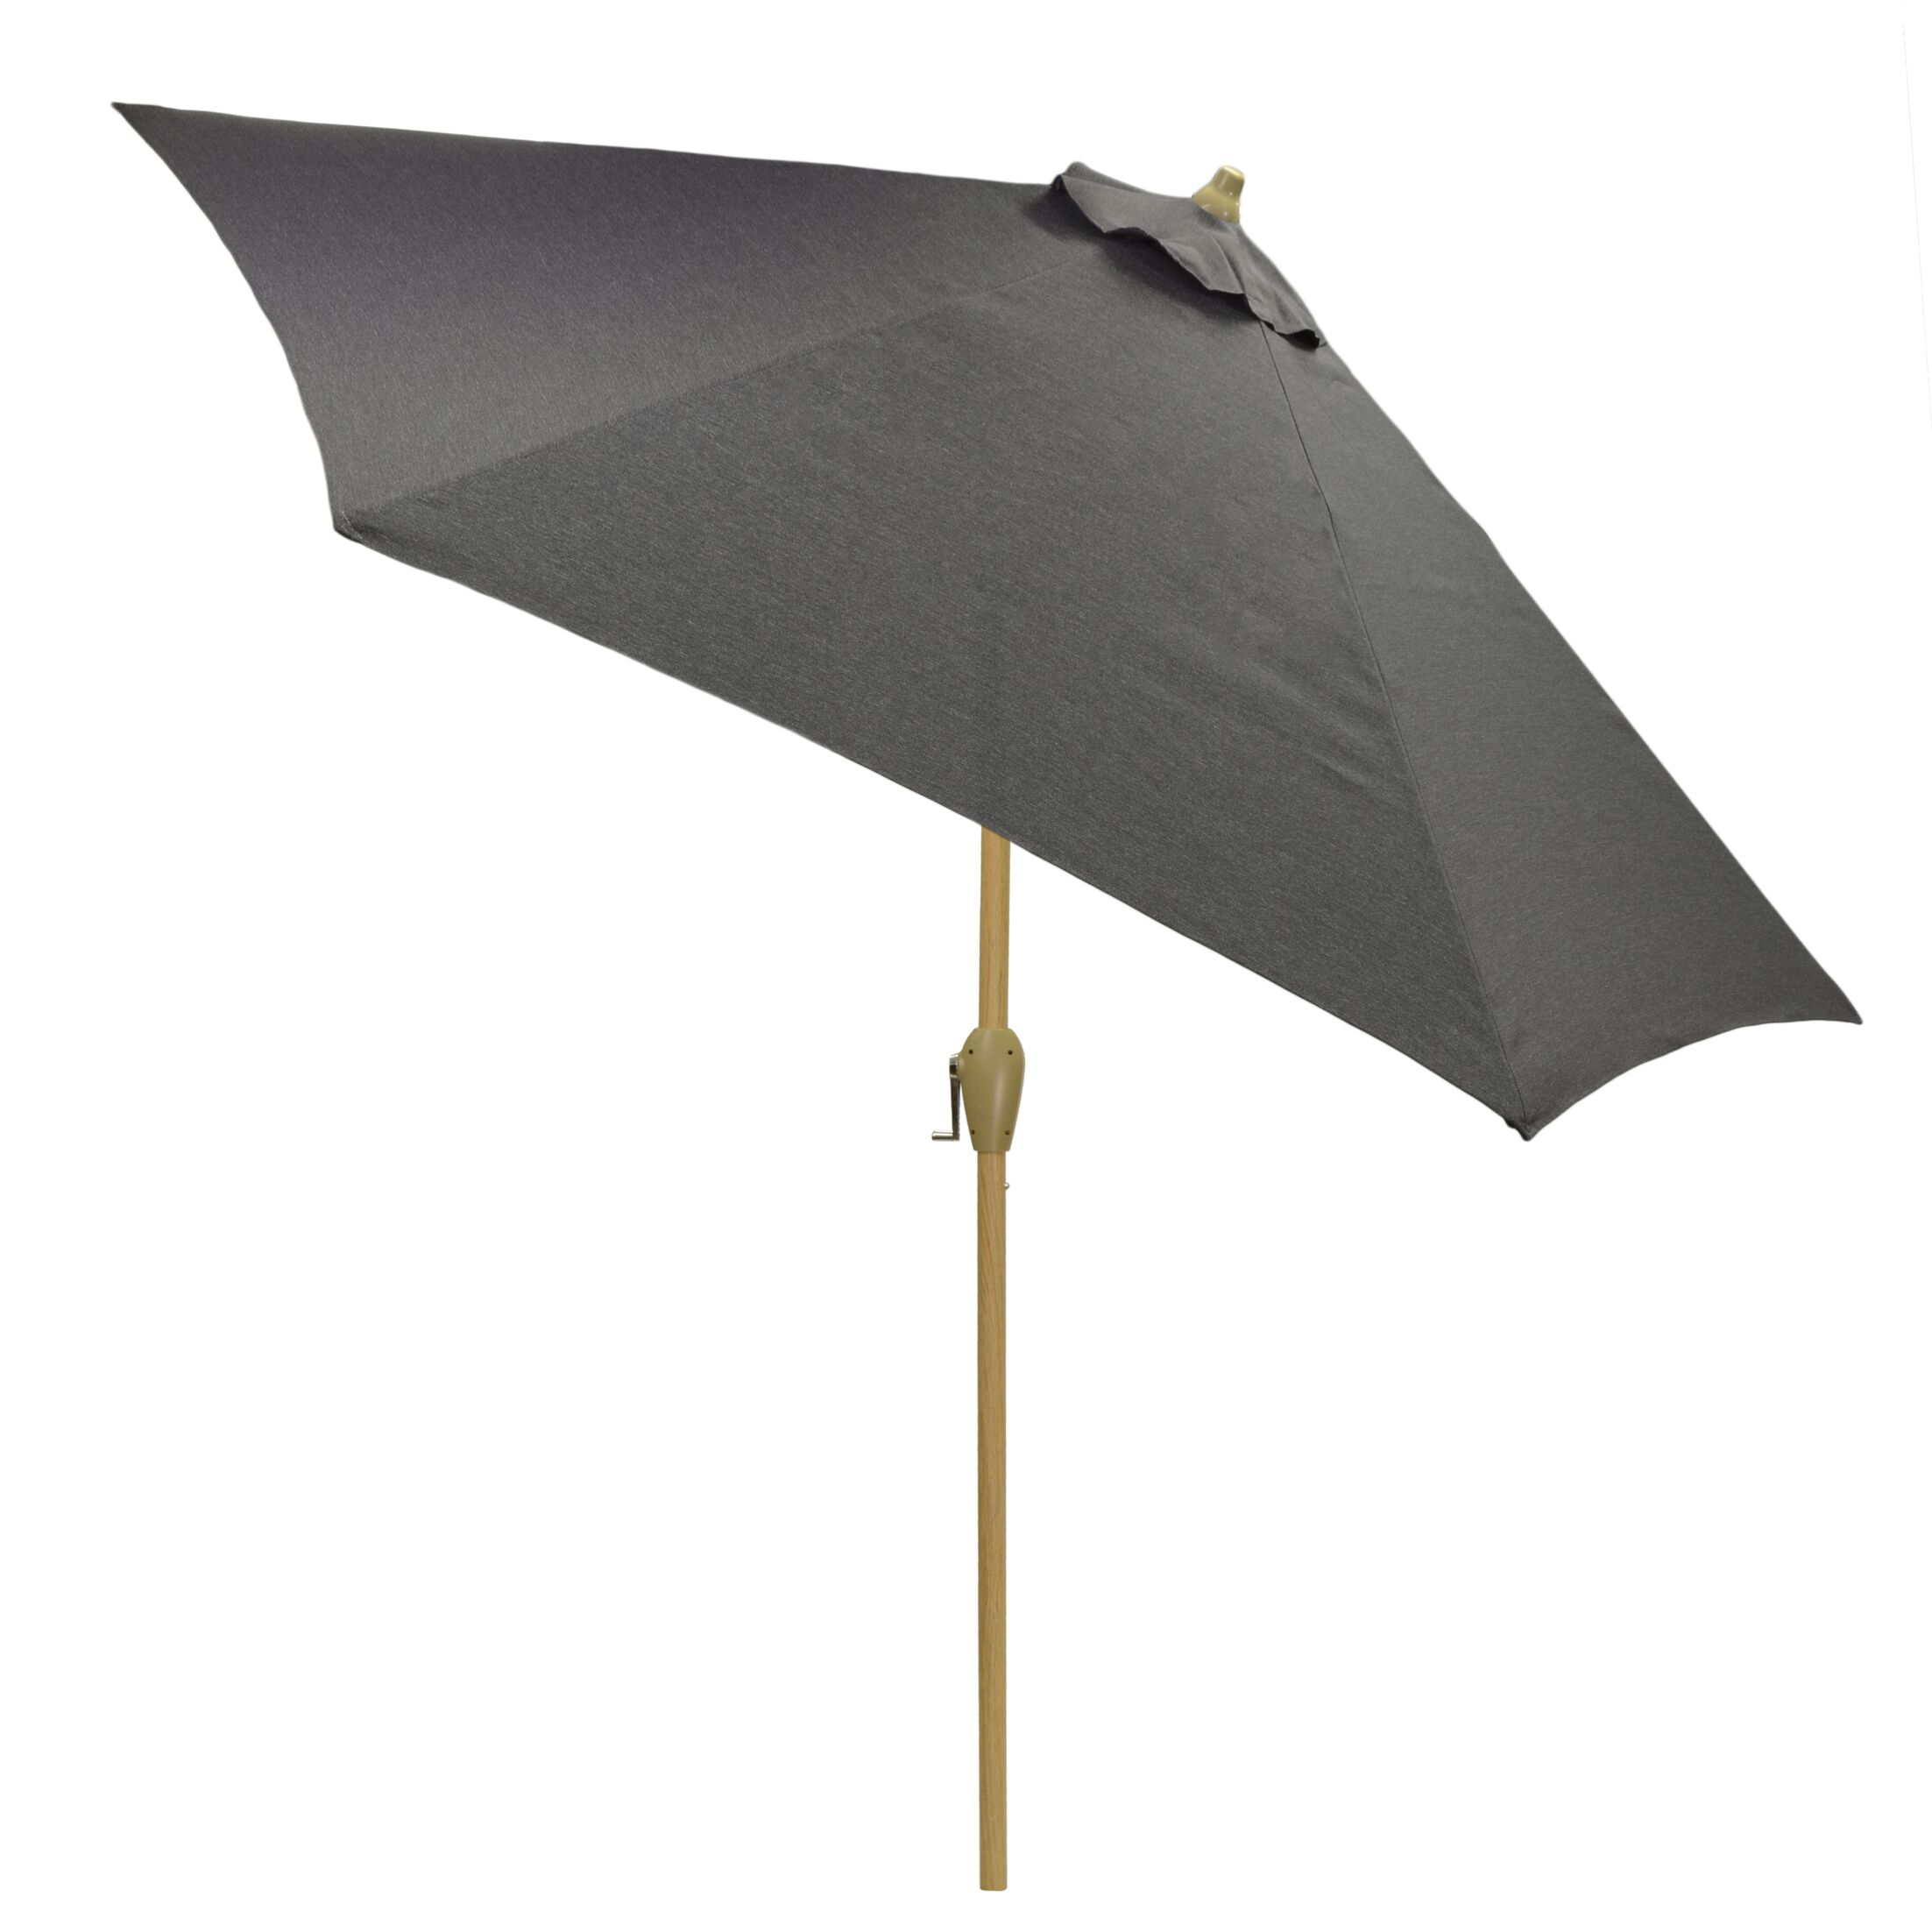 Hulme Solid 8.9' Market Umbrella Fabric Color: Charcoal